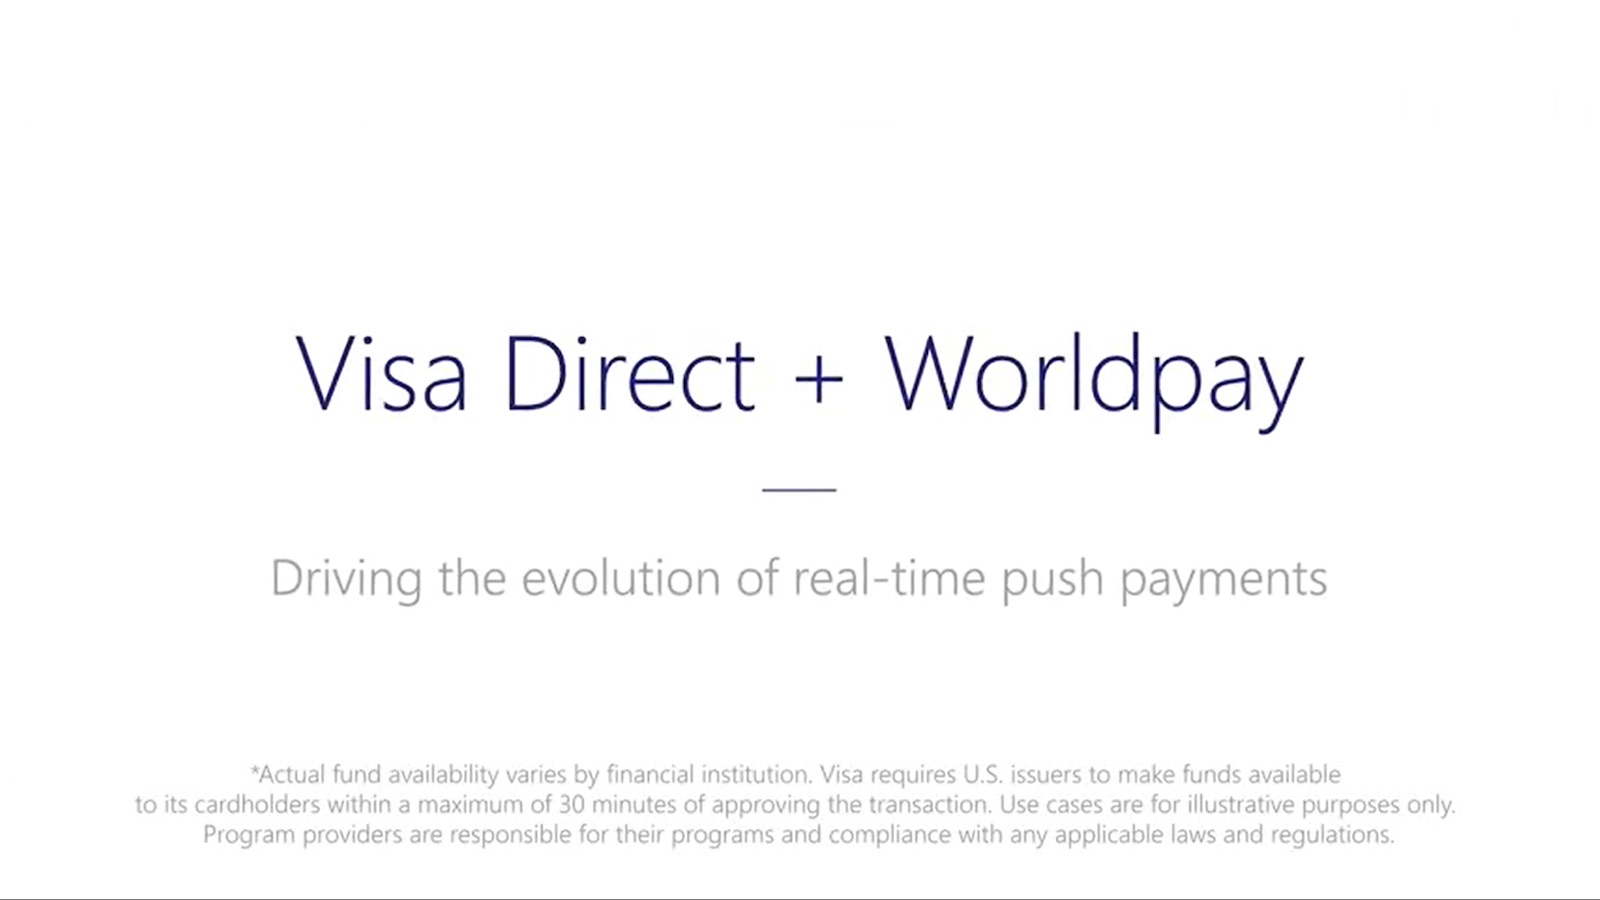 Visa Direct plus Worldpay video screenshot